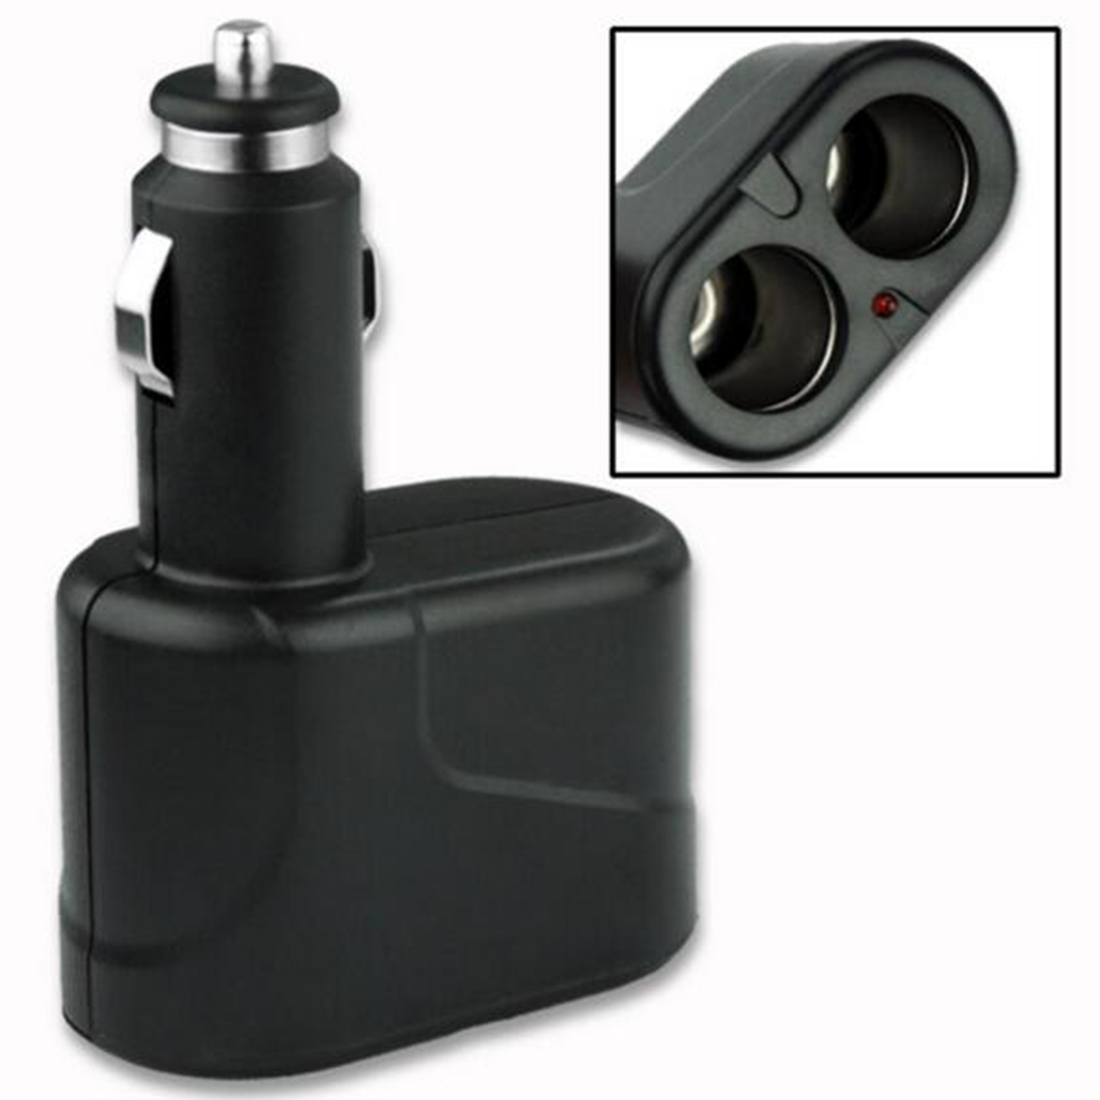 Dewtreetali <font><b>Car</b></font> Accessories 2 Way DC <font><b>12V</b></font> <font><b>Car</b></font> Charger Cigarette Lighter Double <font><b>Power</b></font> <font><b>Adapter</b></font> Splitter Socket image